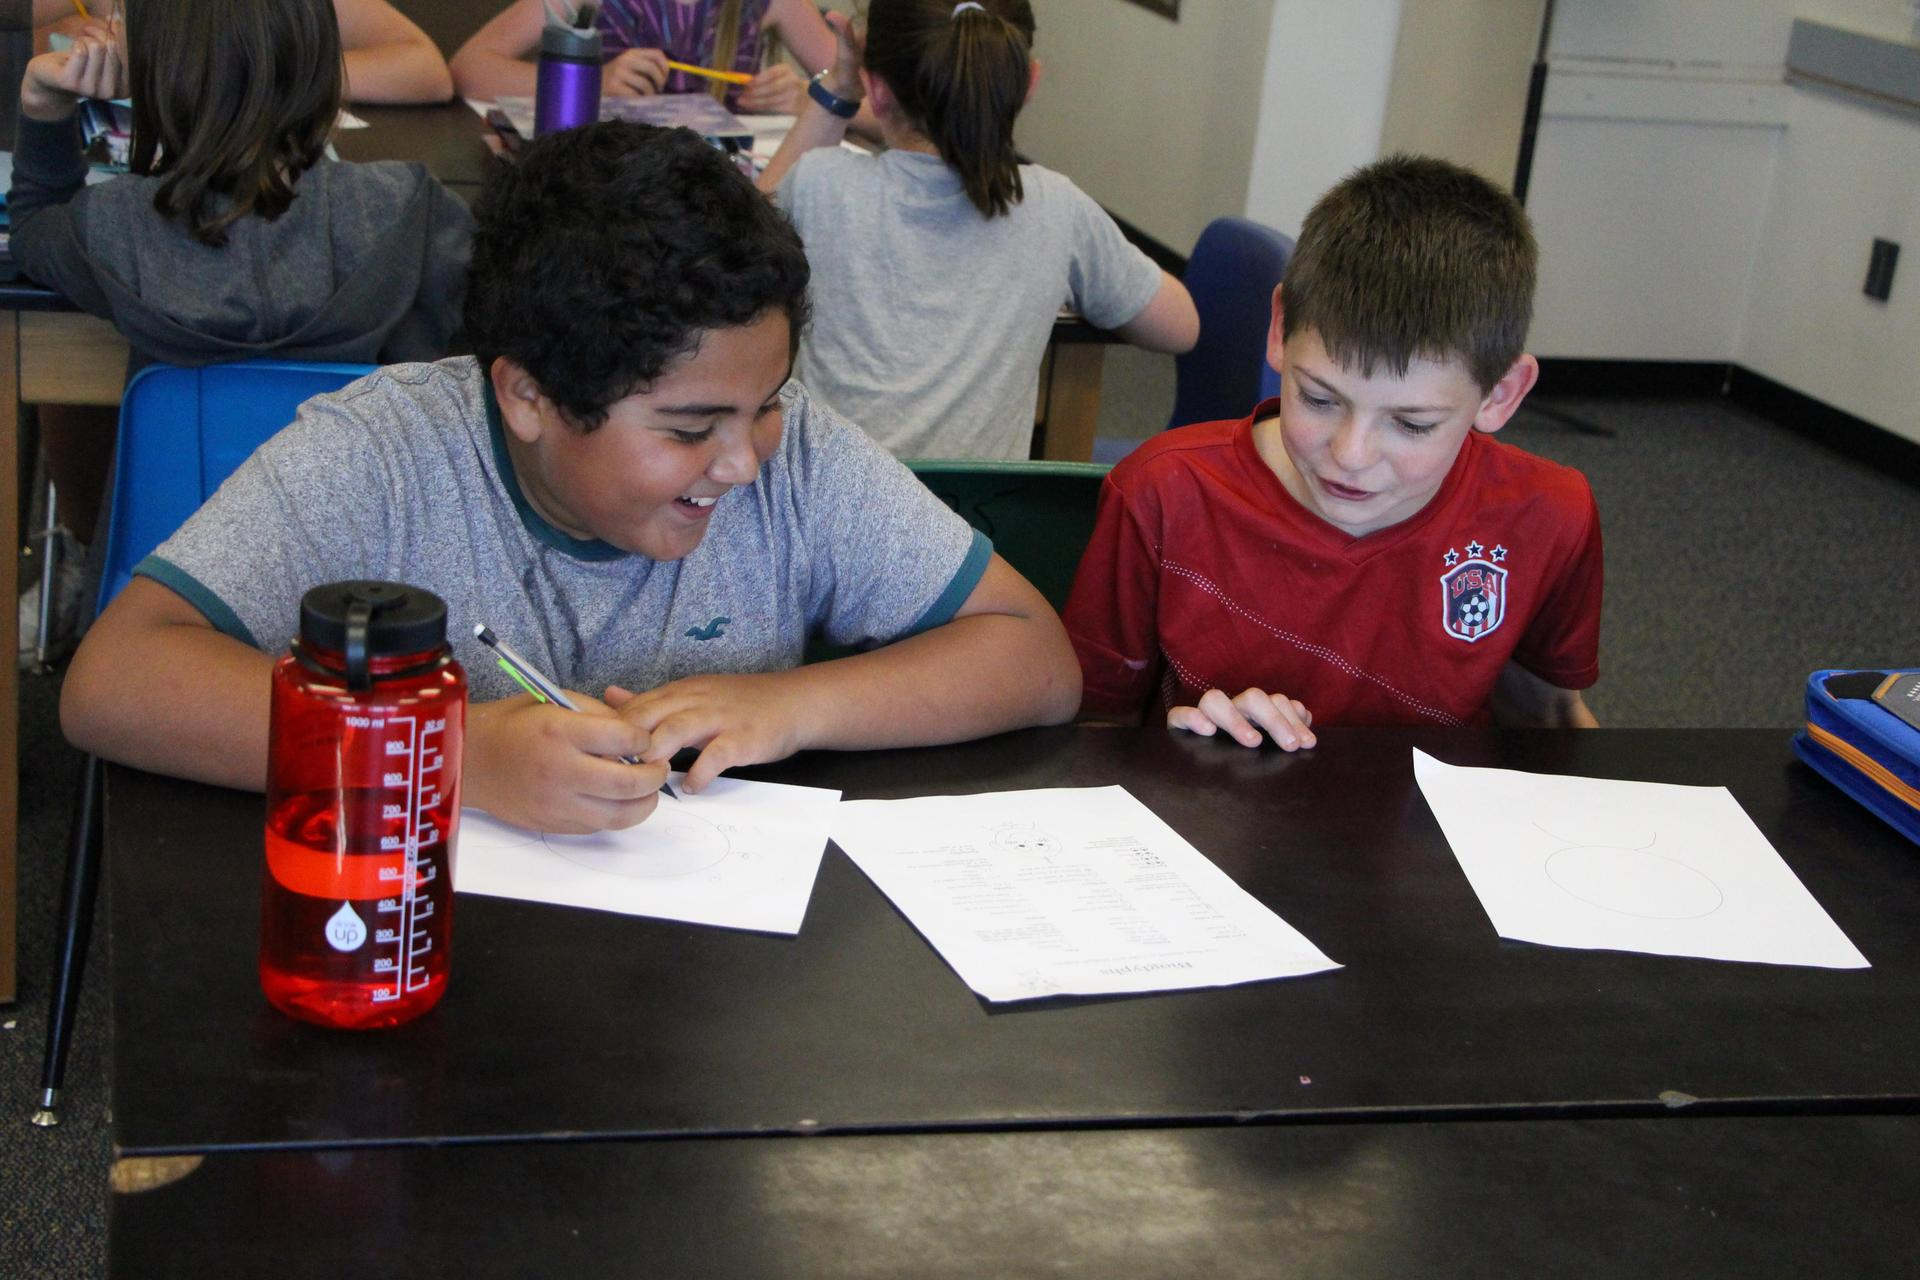 boys studying together